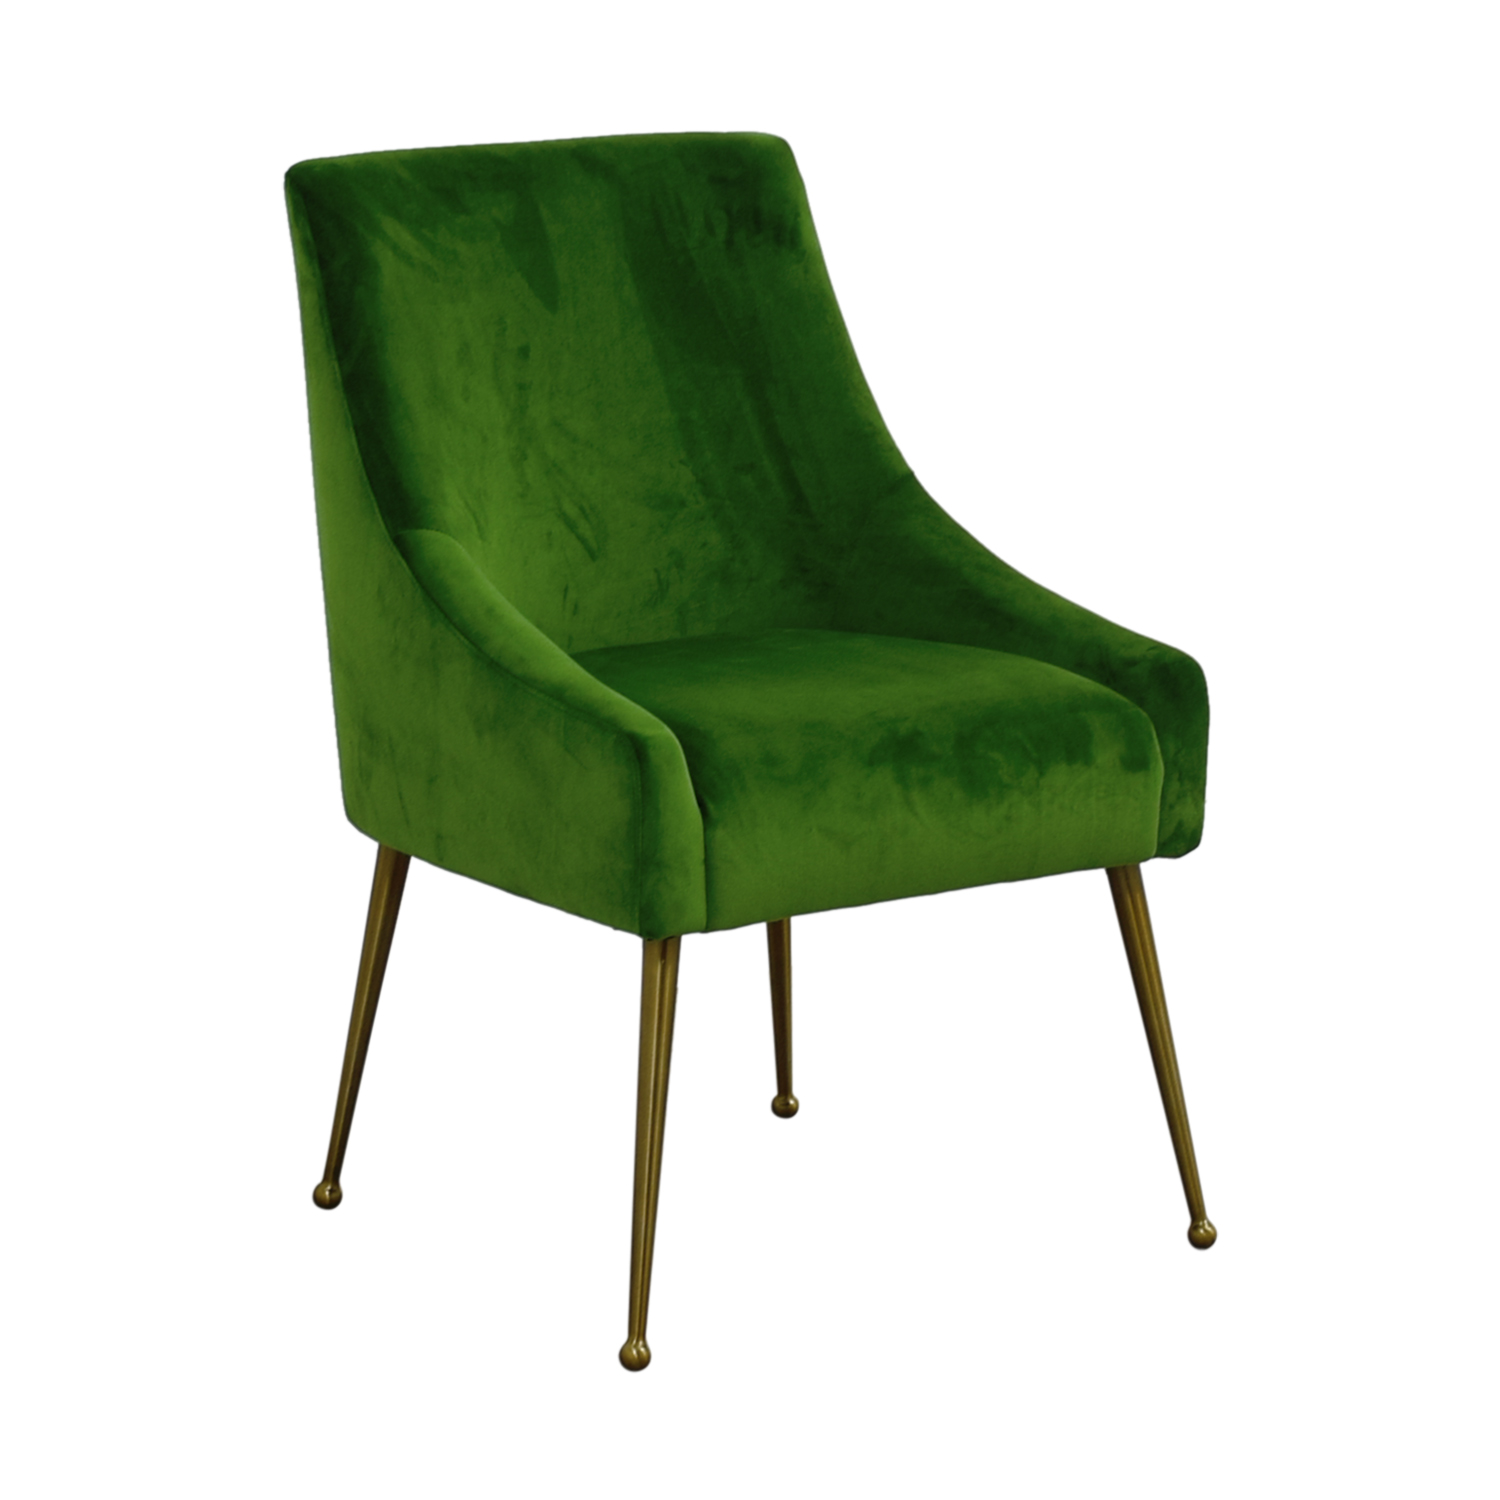 53 OFF  Tov Tov Green Velvet Accent Chair  Chairs